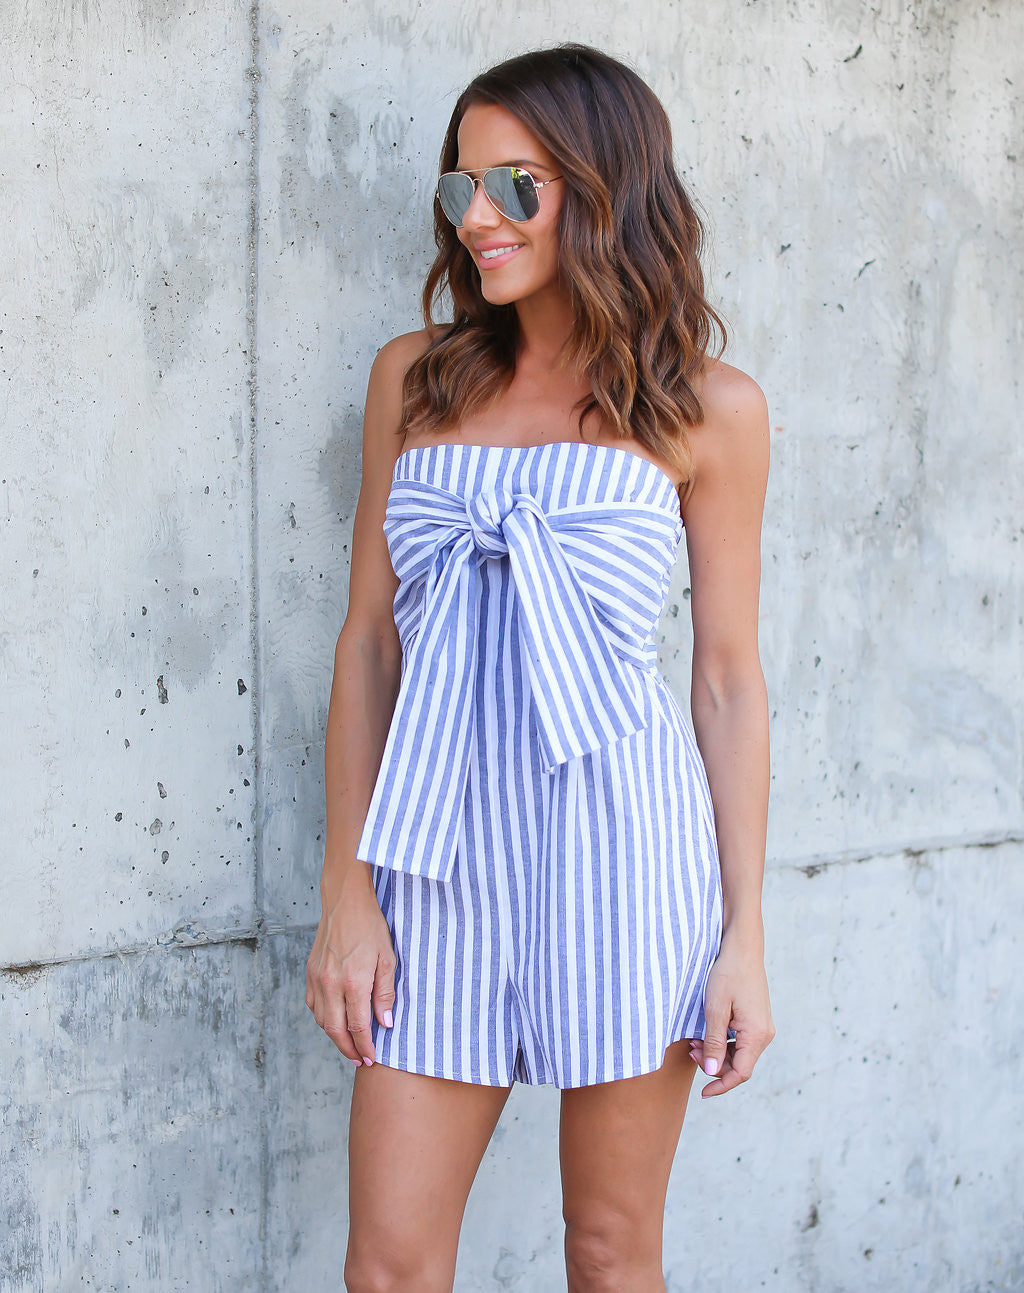 4be436382a46 Detail Product. ← Home - 50% SALE - Lowe Striped Tie Romper ...